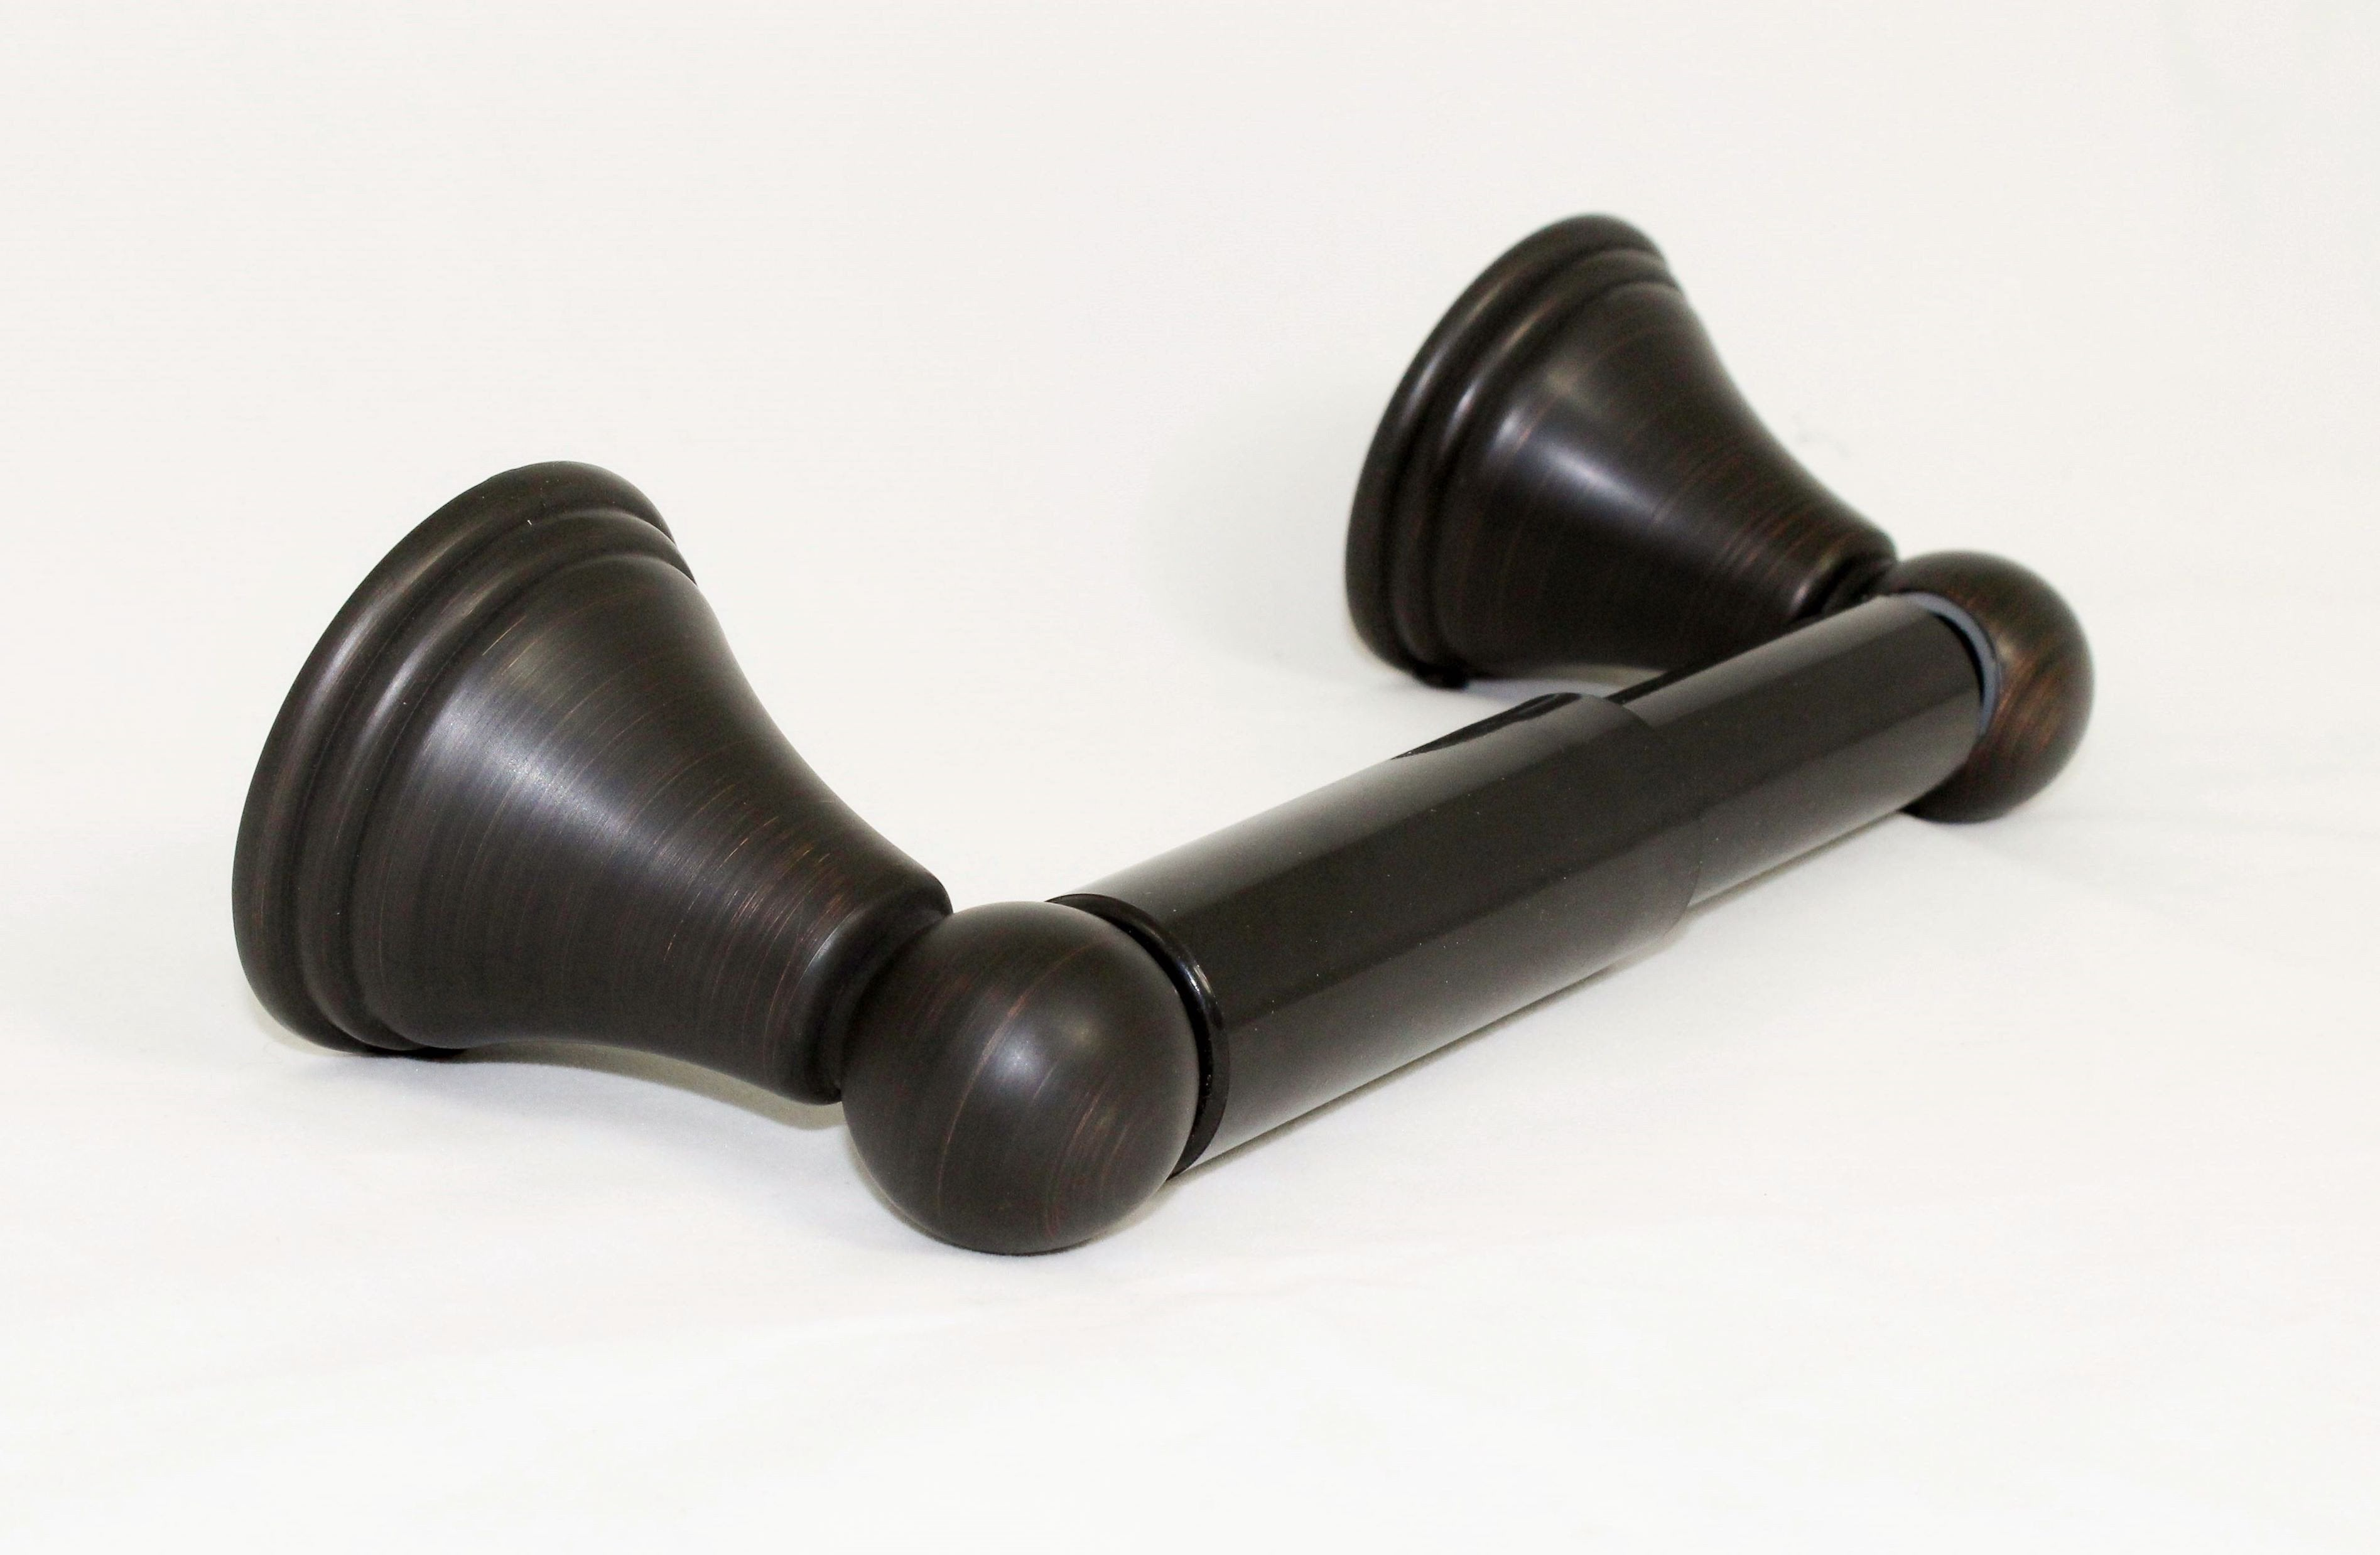 SMB15752-OB - Toilet Paper Holder, Oil Rubbed Bronze, Lancaster Collection